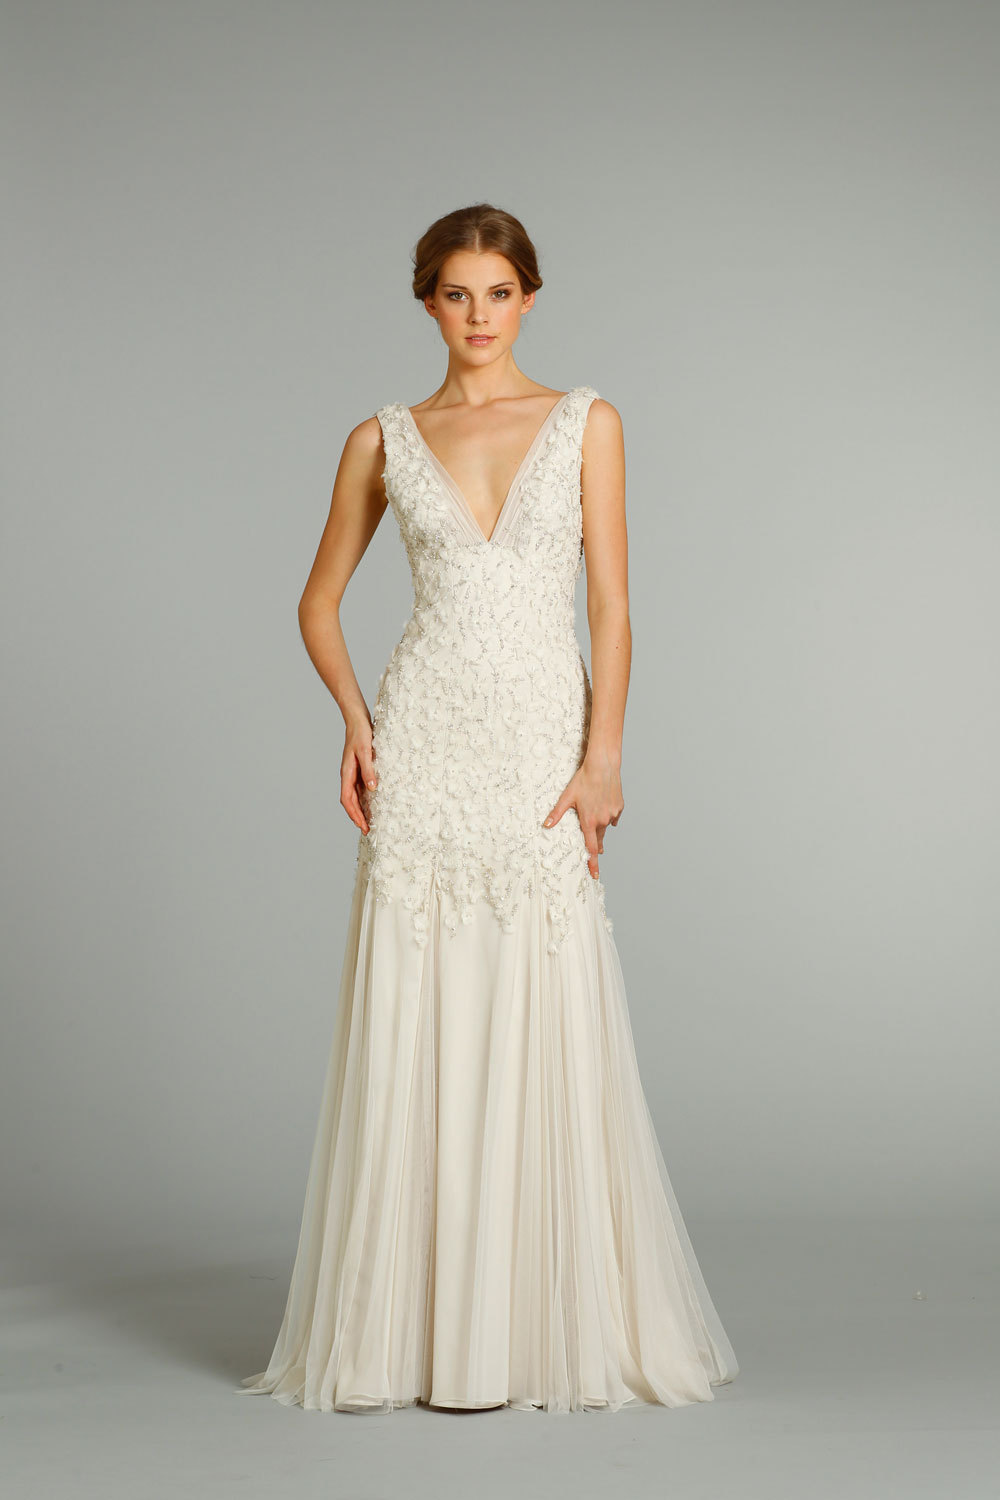 Fall-2012-wedding-dresses-jlm-couture-bridal-jim-hjelm-8265_front.full